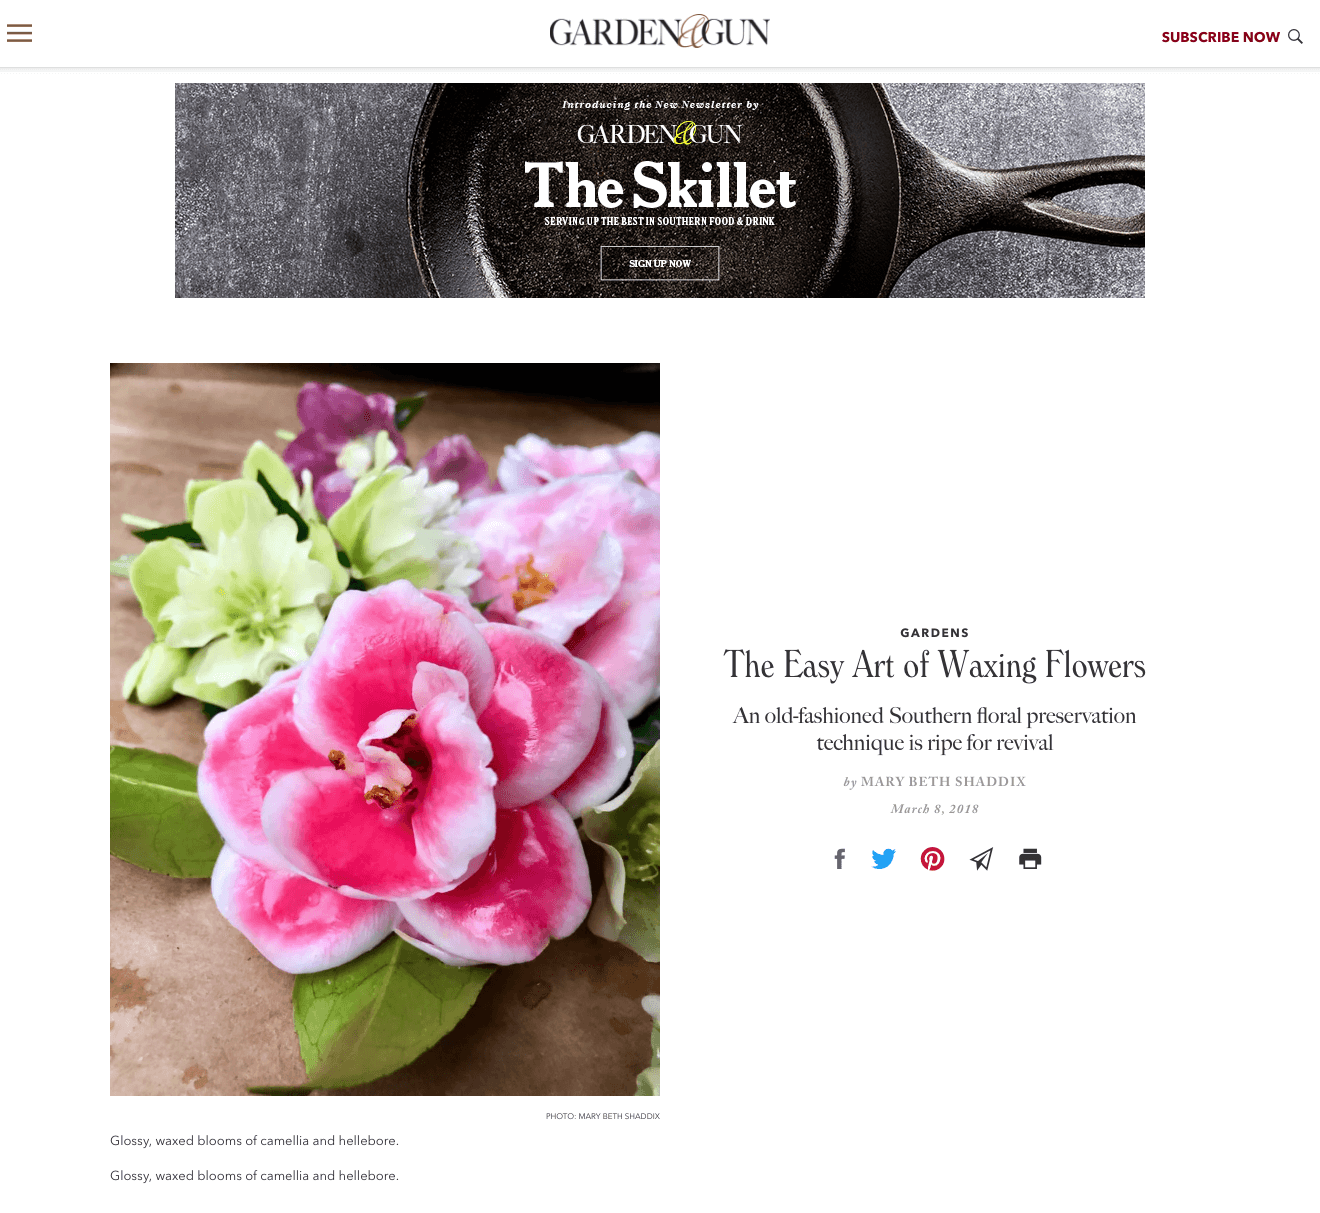 GardenandGun_Easy Art of Waxing Flowers March 2018 Shaddix